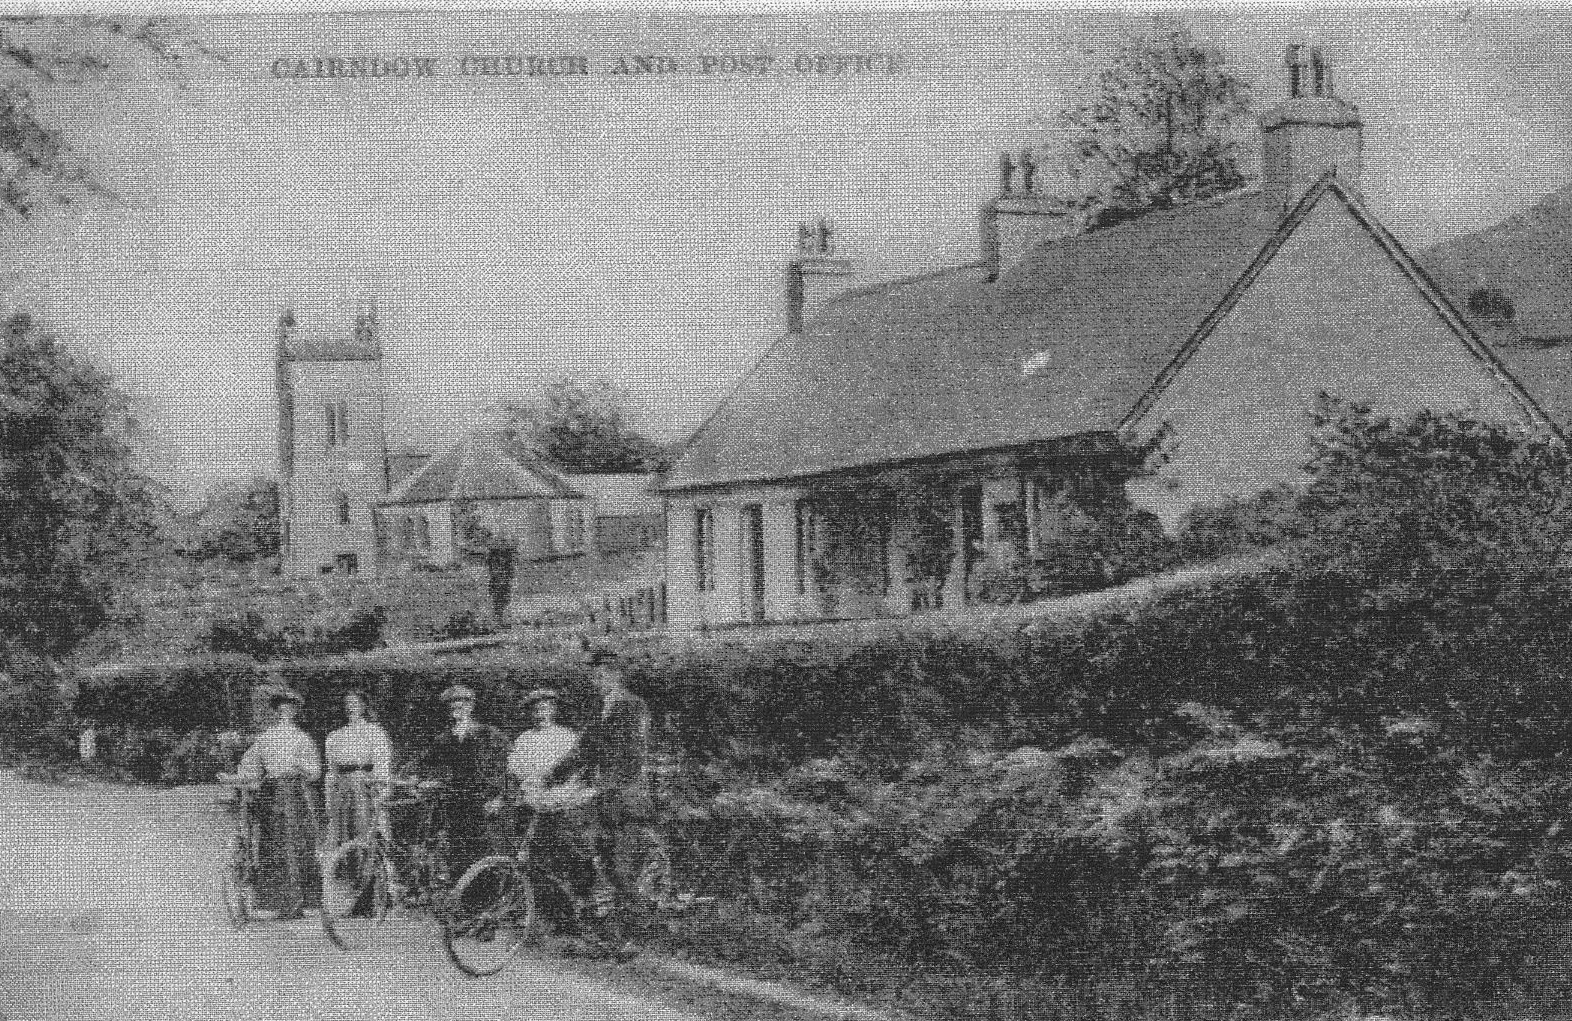 Cairndow Church and Post Office